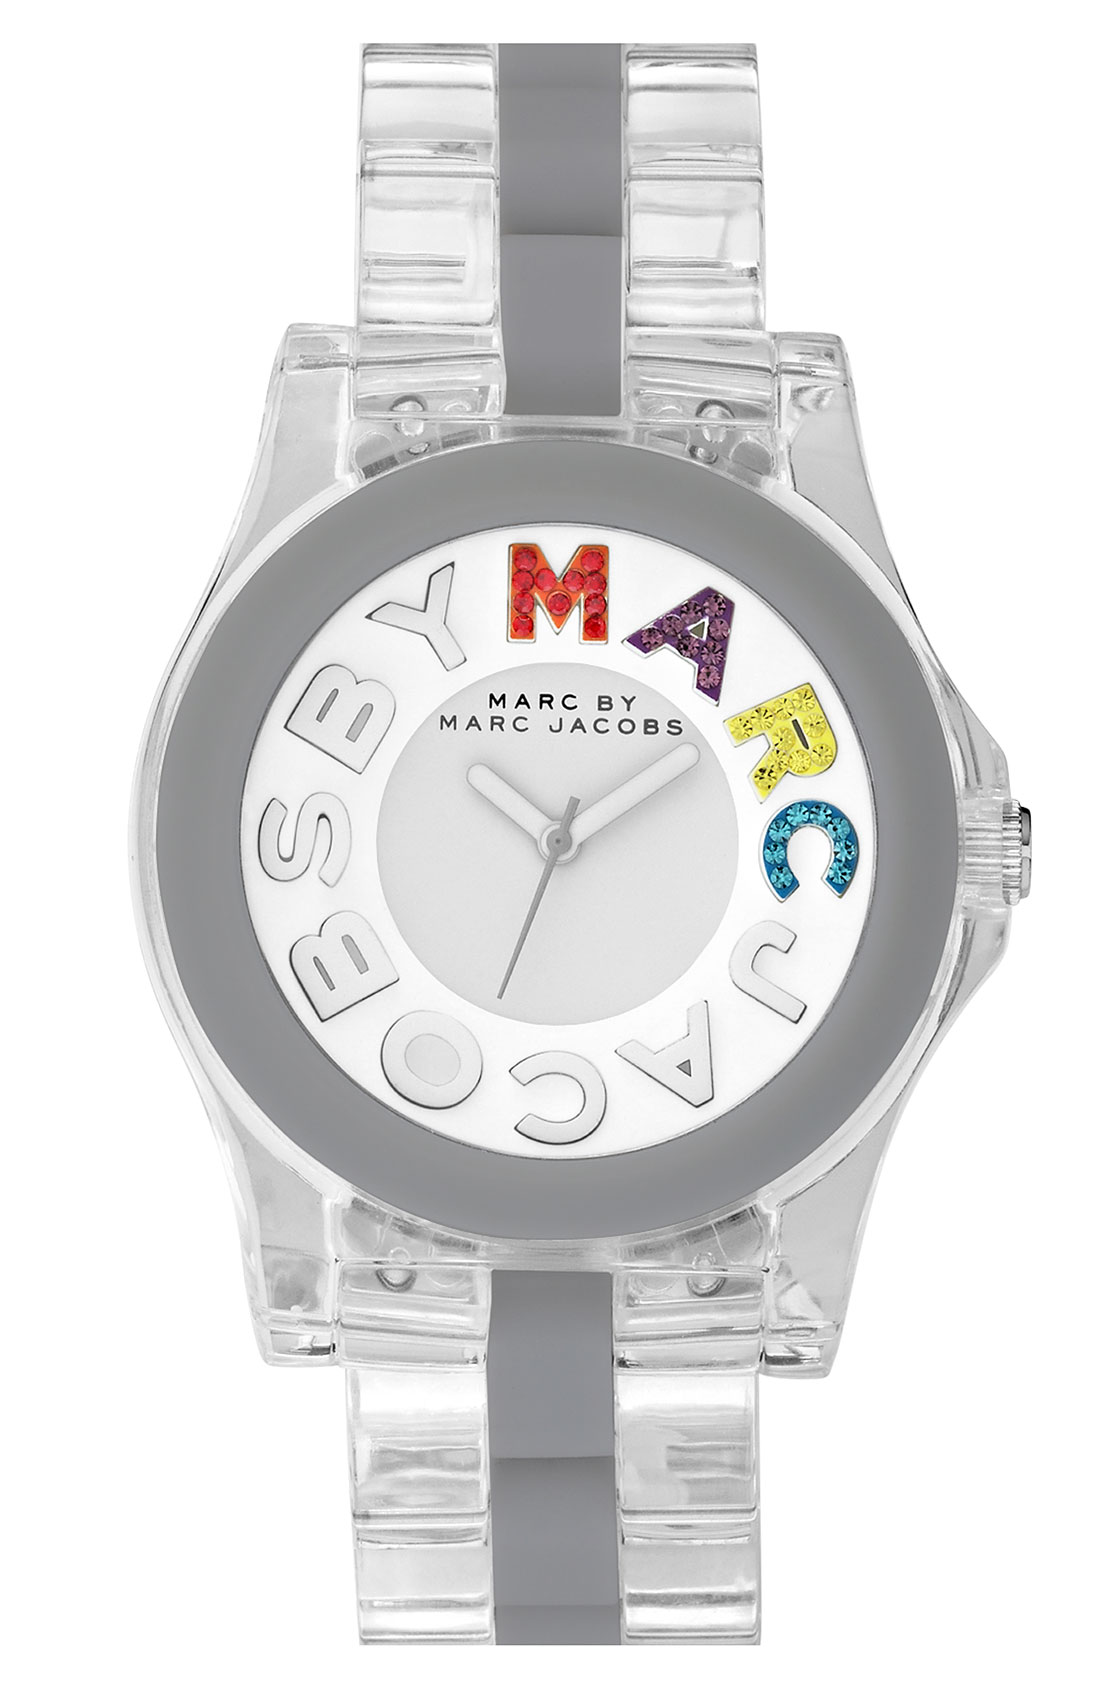 62983 likewise Hillary Clinton Pantsuit Displayed In Arkansas Museum additionally Luxottica Logo further Nine West Womens Honey Leather Strap Watch 36mm Nw1778chhy Gold also P. on oscar de la renta logo watch